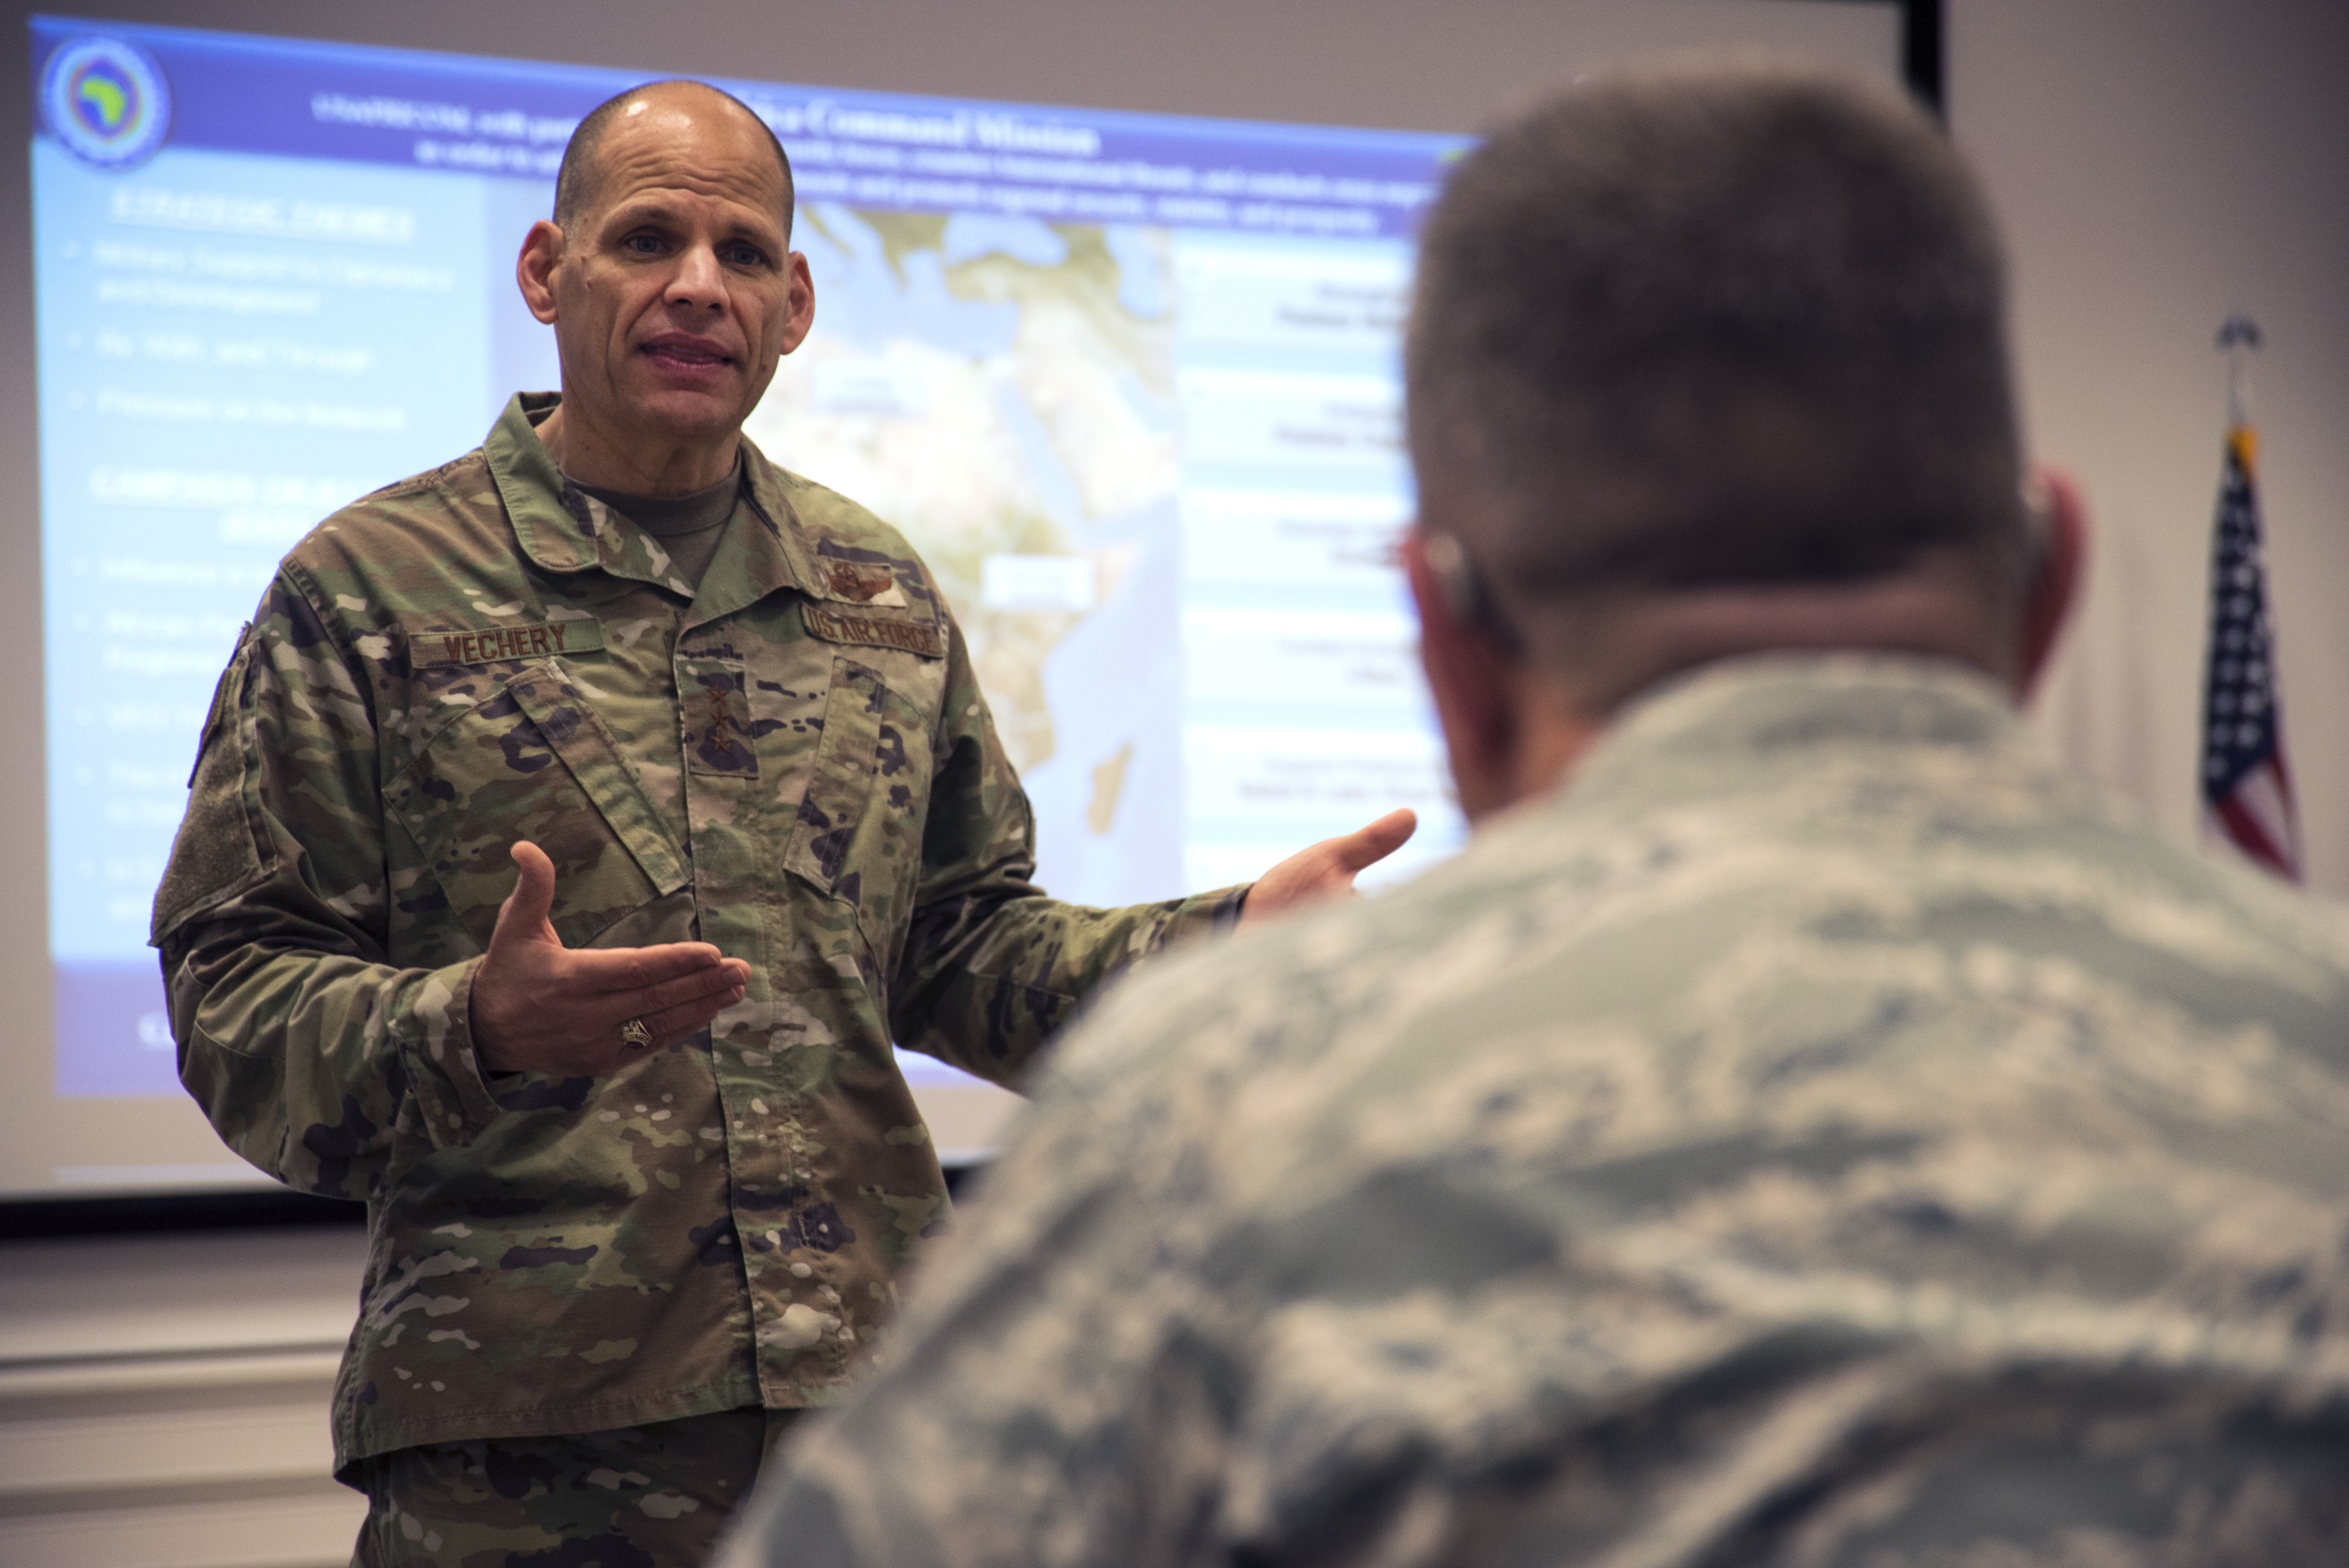 Air Force Lt. Gen. James C. Vechery, U.S. Africa Command deputy to the commander for military operations, speaks to attendees of the 2019 AFRICOM Command Surgeon Synchronization Conference, May 28, 2019 in Stuttgart, Germany. Vechery spoke about utilizing the medical field for future engagements with African partner nations. (U.S. Navy photo by Mass Communication Specialist 1st Class Christopher Hurd/Released)